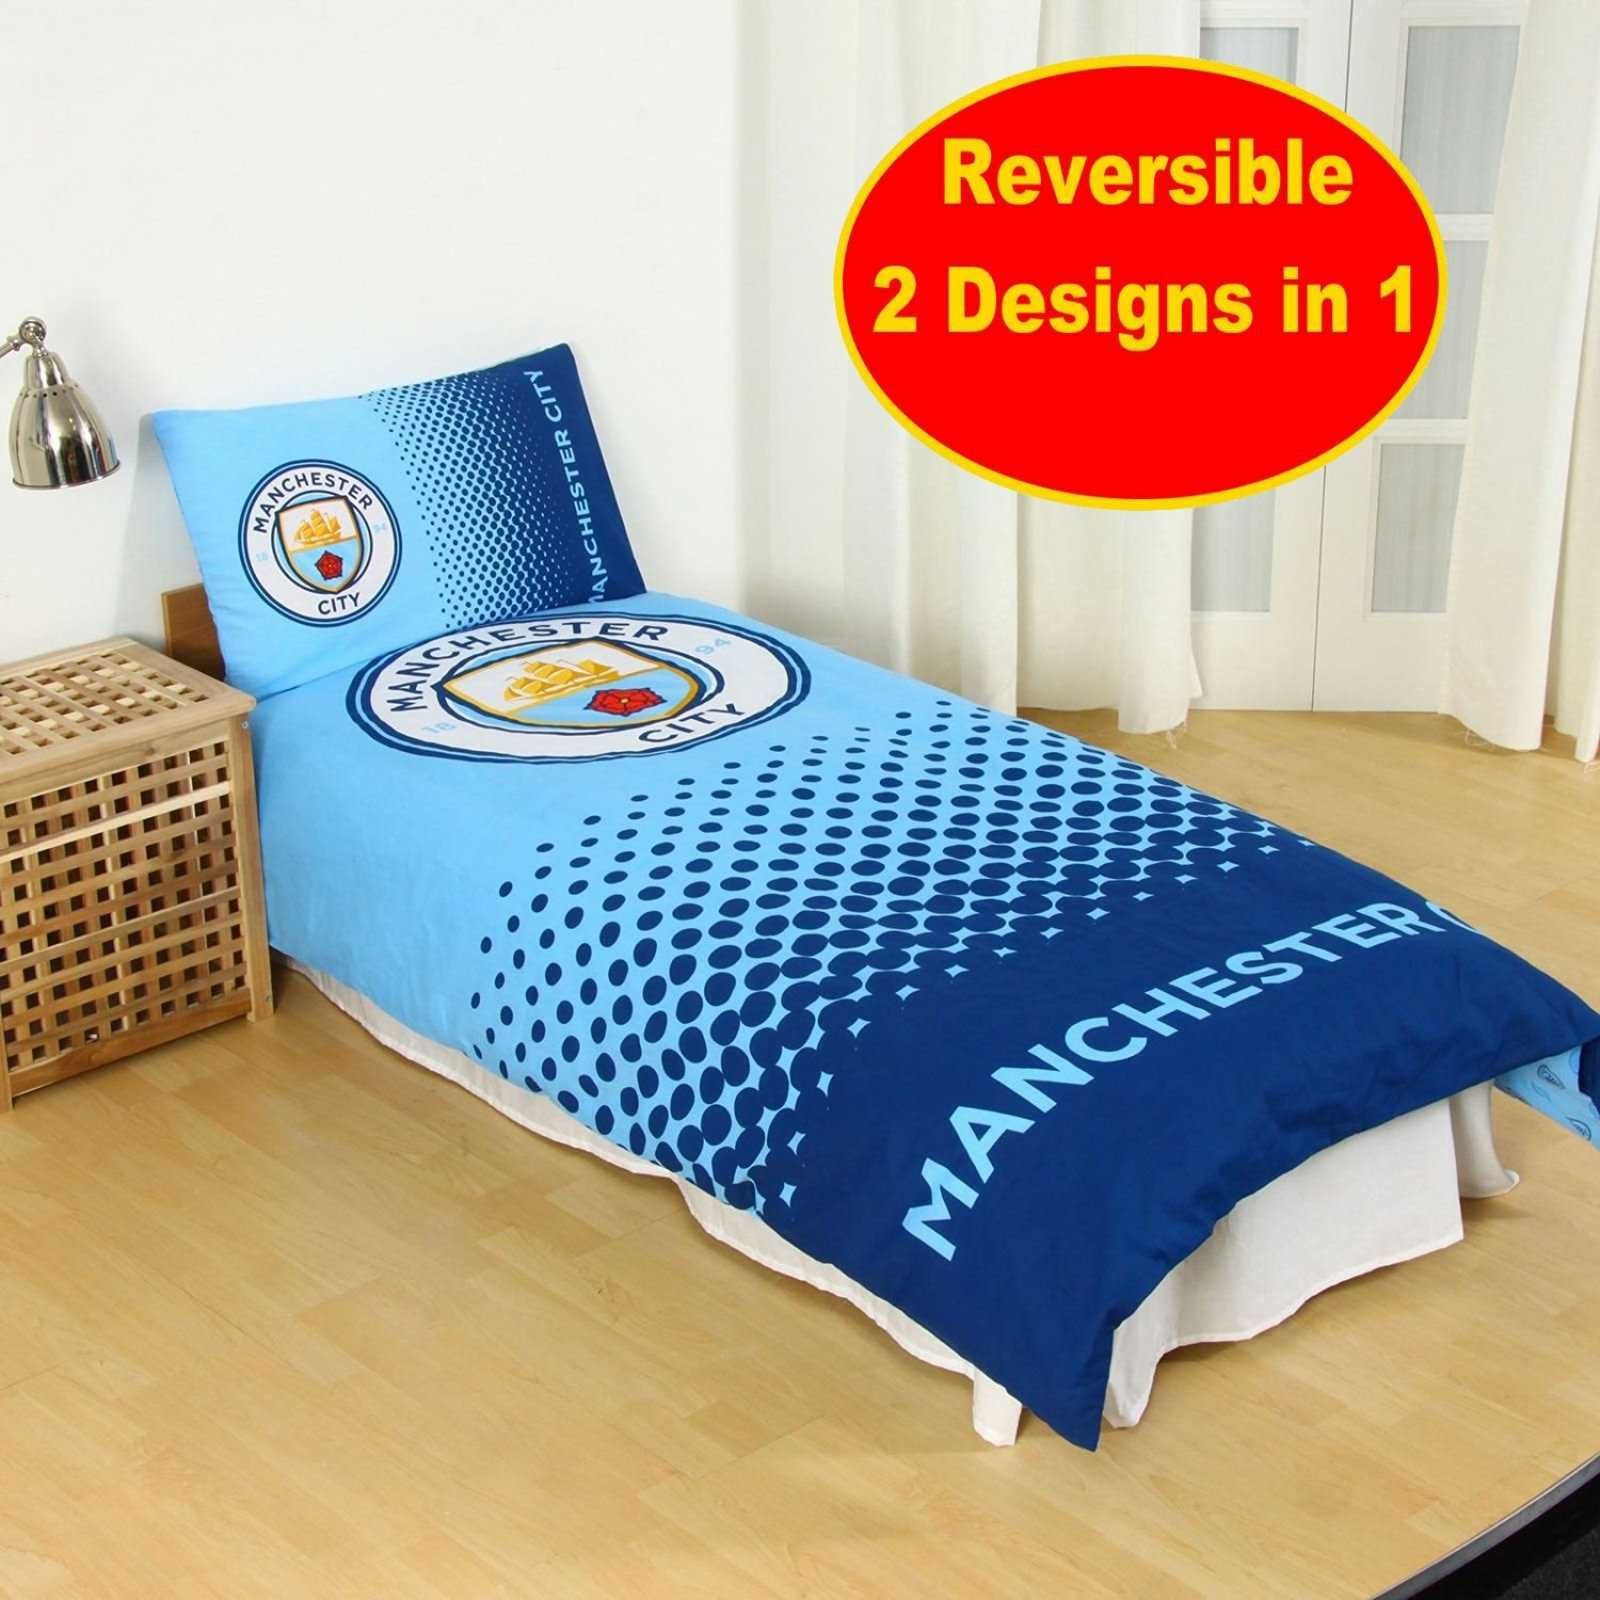 manchester-city-fade-single-duvet-stamp1600 | Football Club ... : mr tumble quilt cover - Adamdwight.com